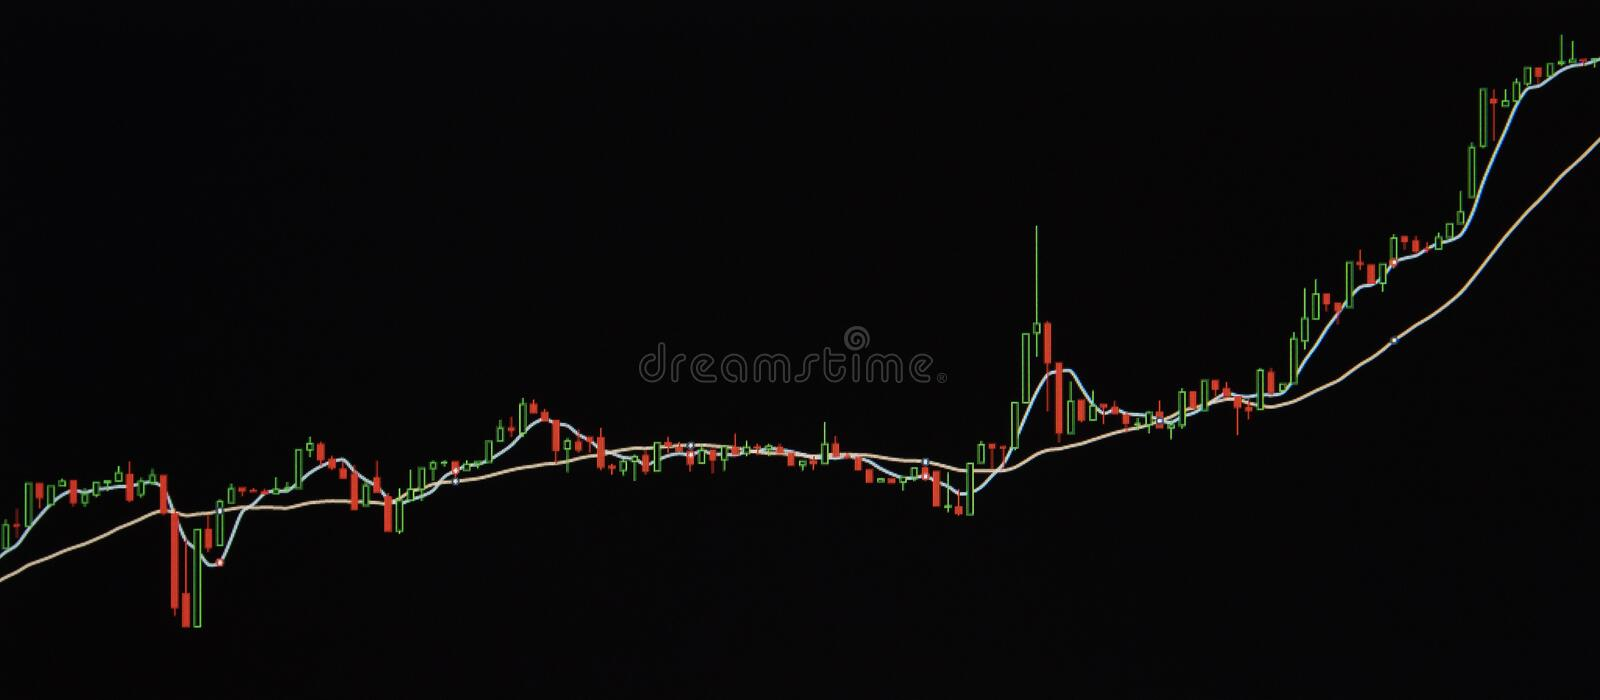 Candle stick graph chart of stock market. royalty free stock photos